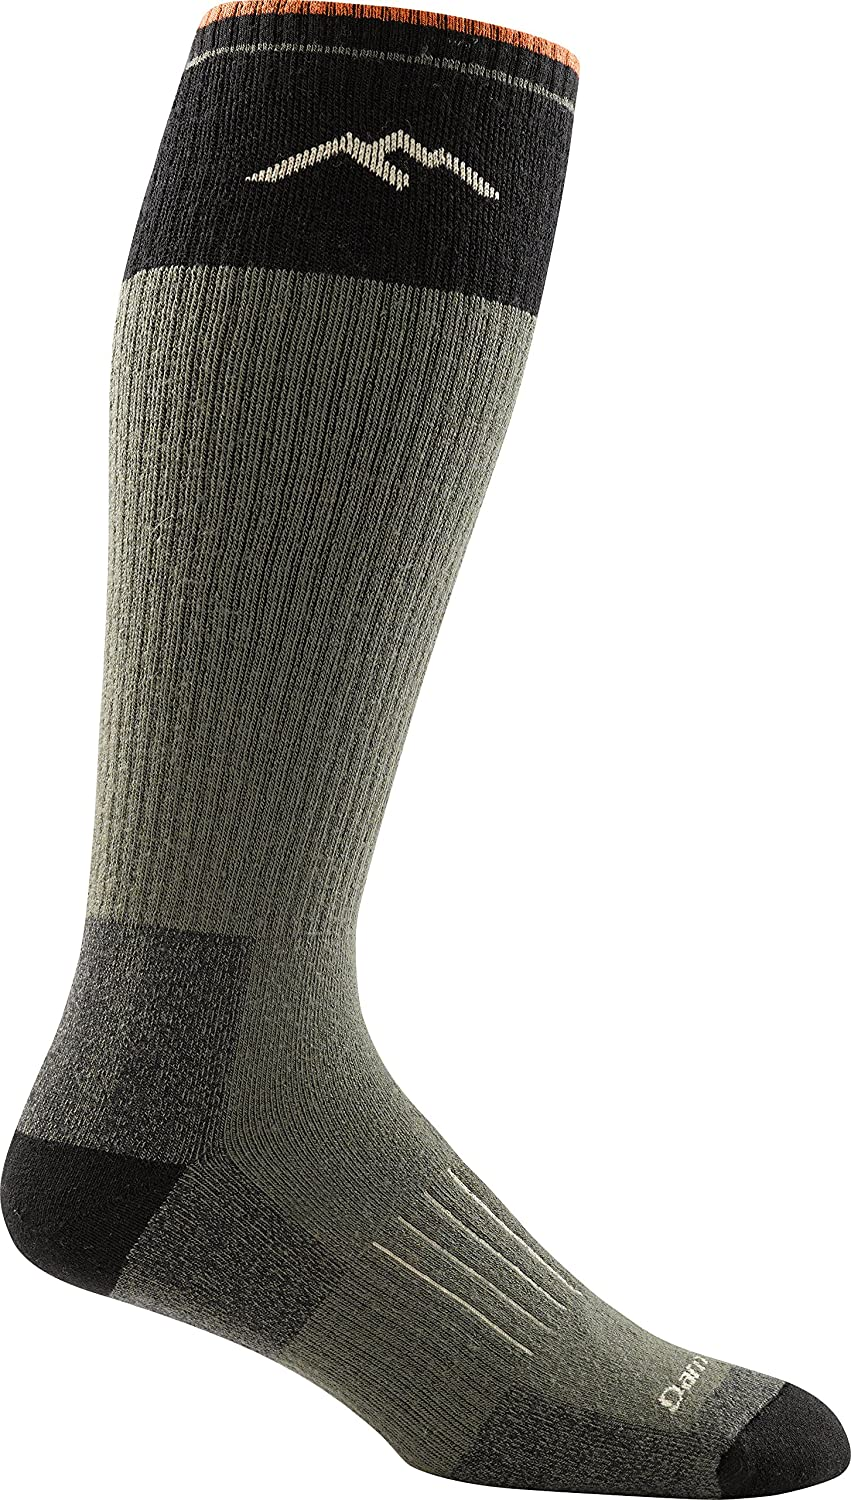 Darn Tough Vermont Merino Wool Mountaineering Extra Cushion Sock 1440